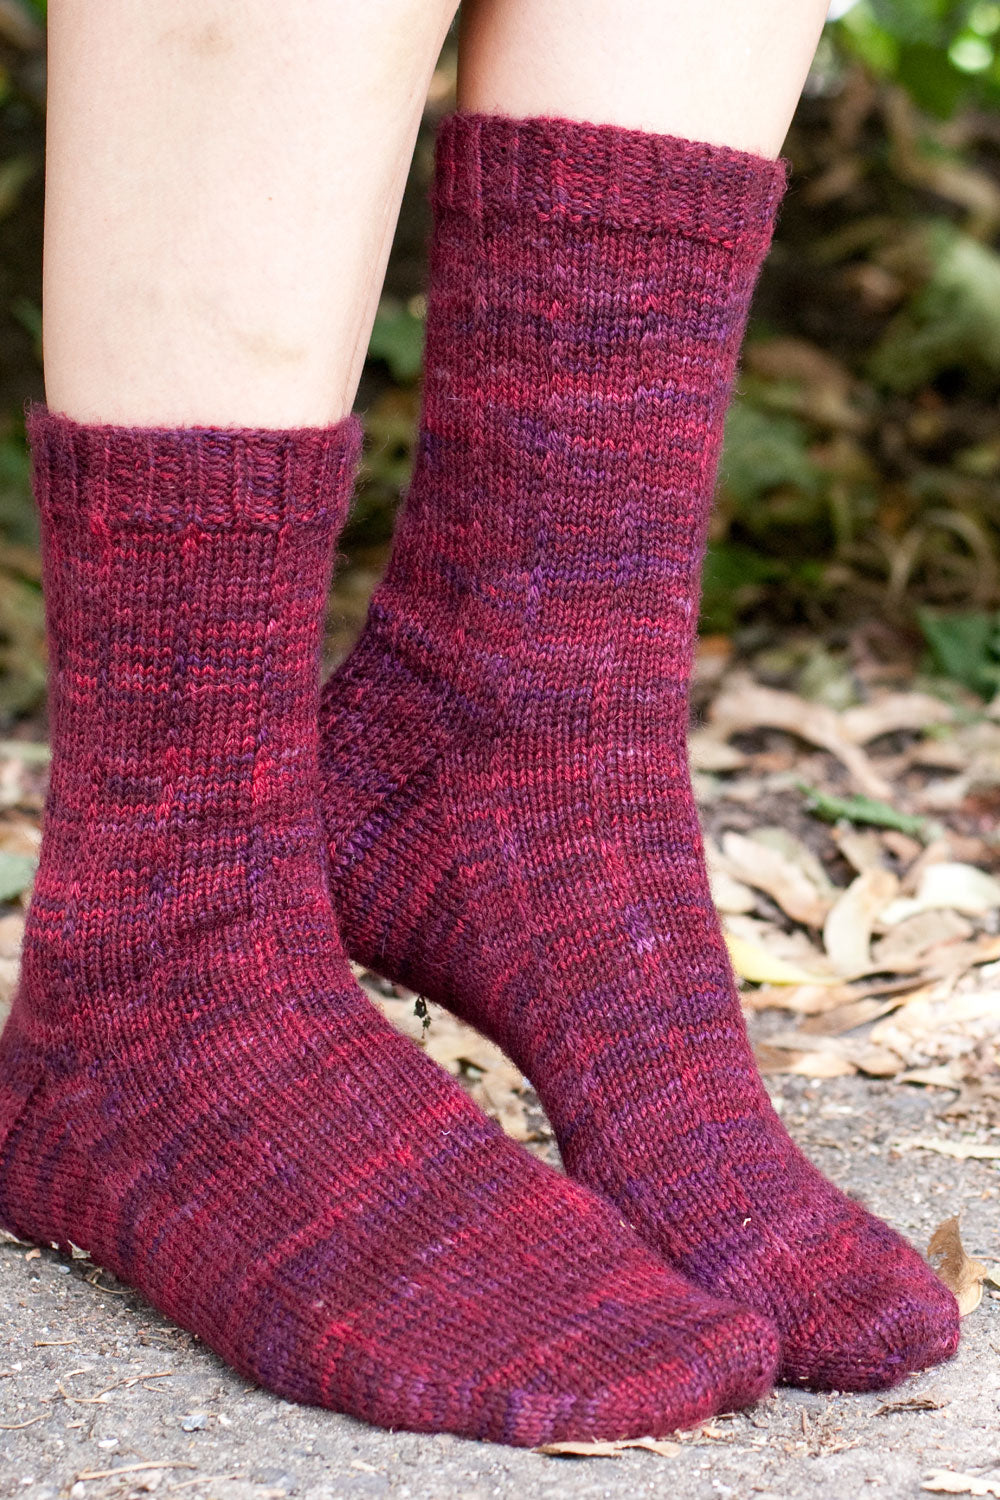 Socks knit with Pizzicato sock yarn in Palestra (purple/pink)